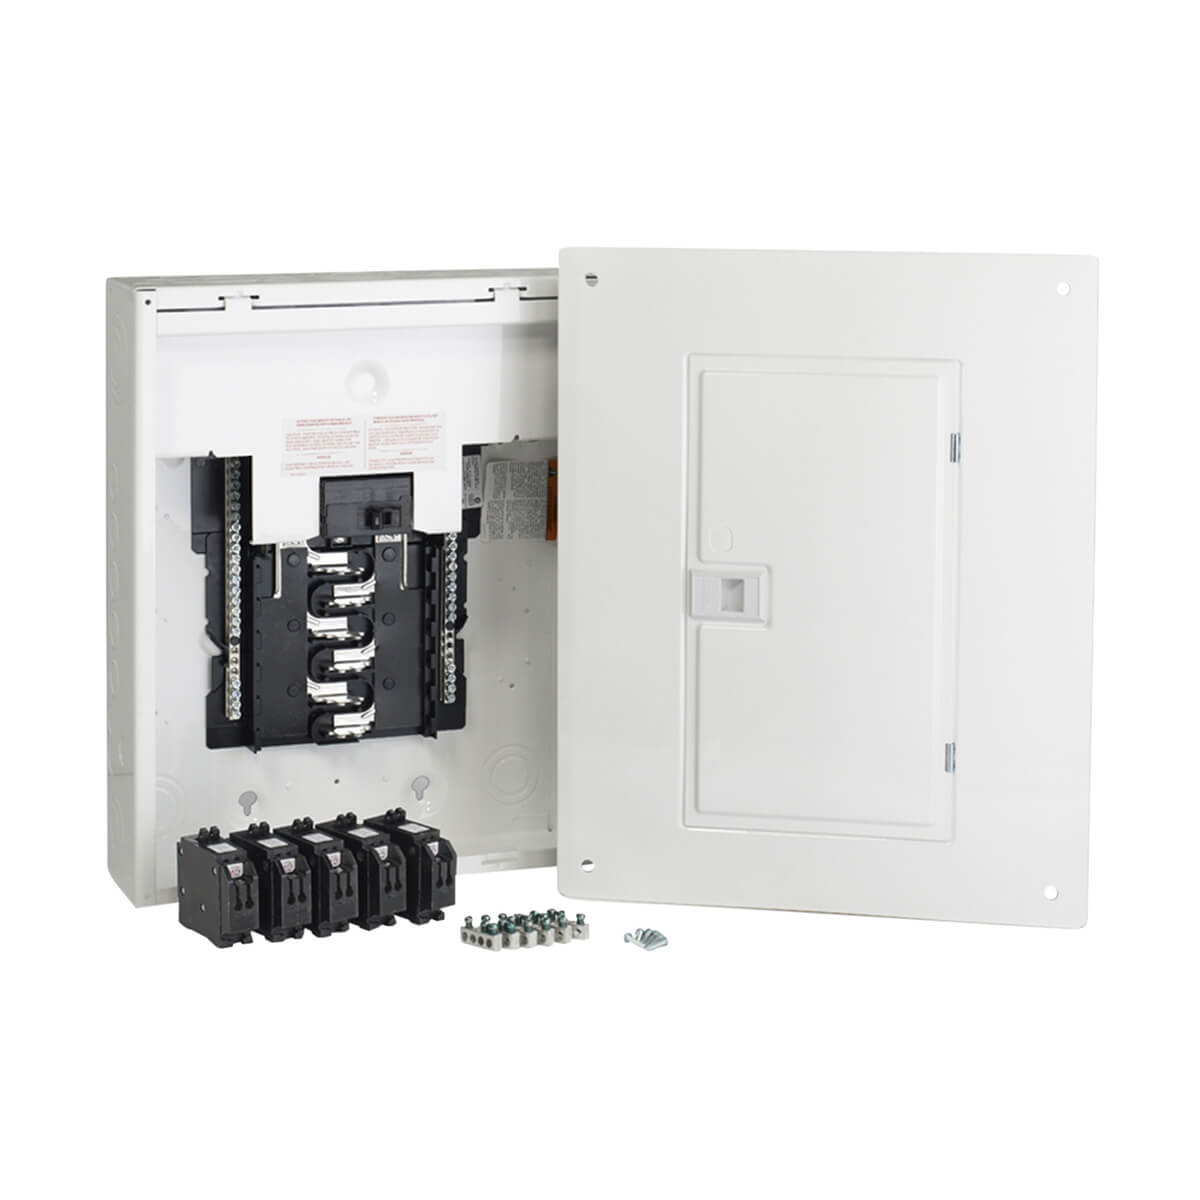 Circuits Maximum HomeLine Retrofit Panel Package with Breakers - 100 Amp, 12 Spaces/24